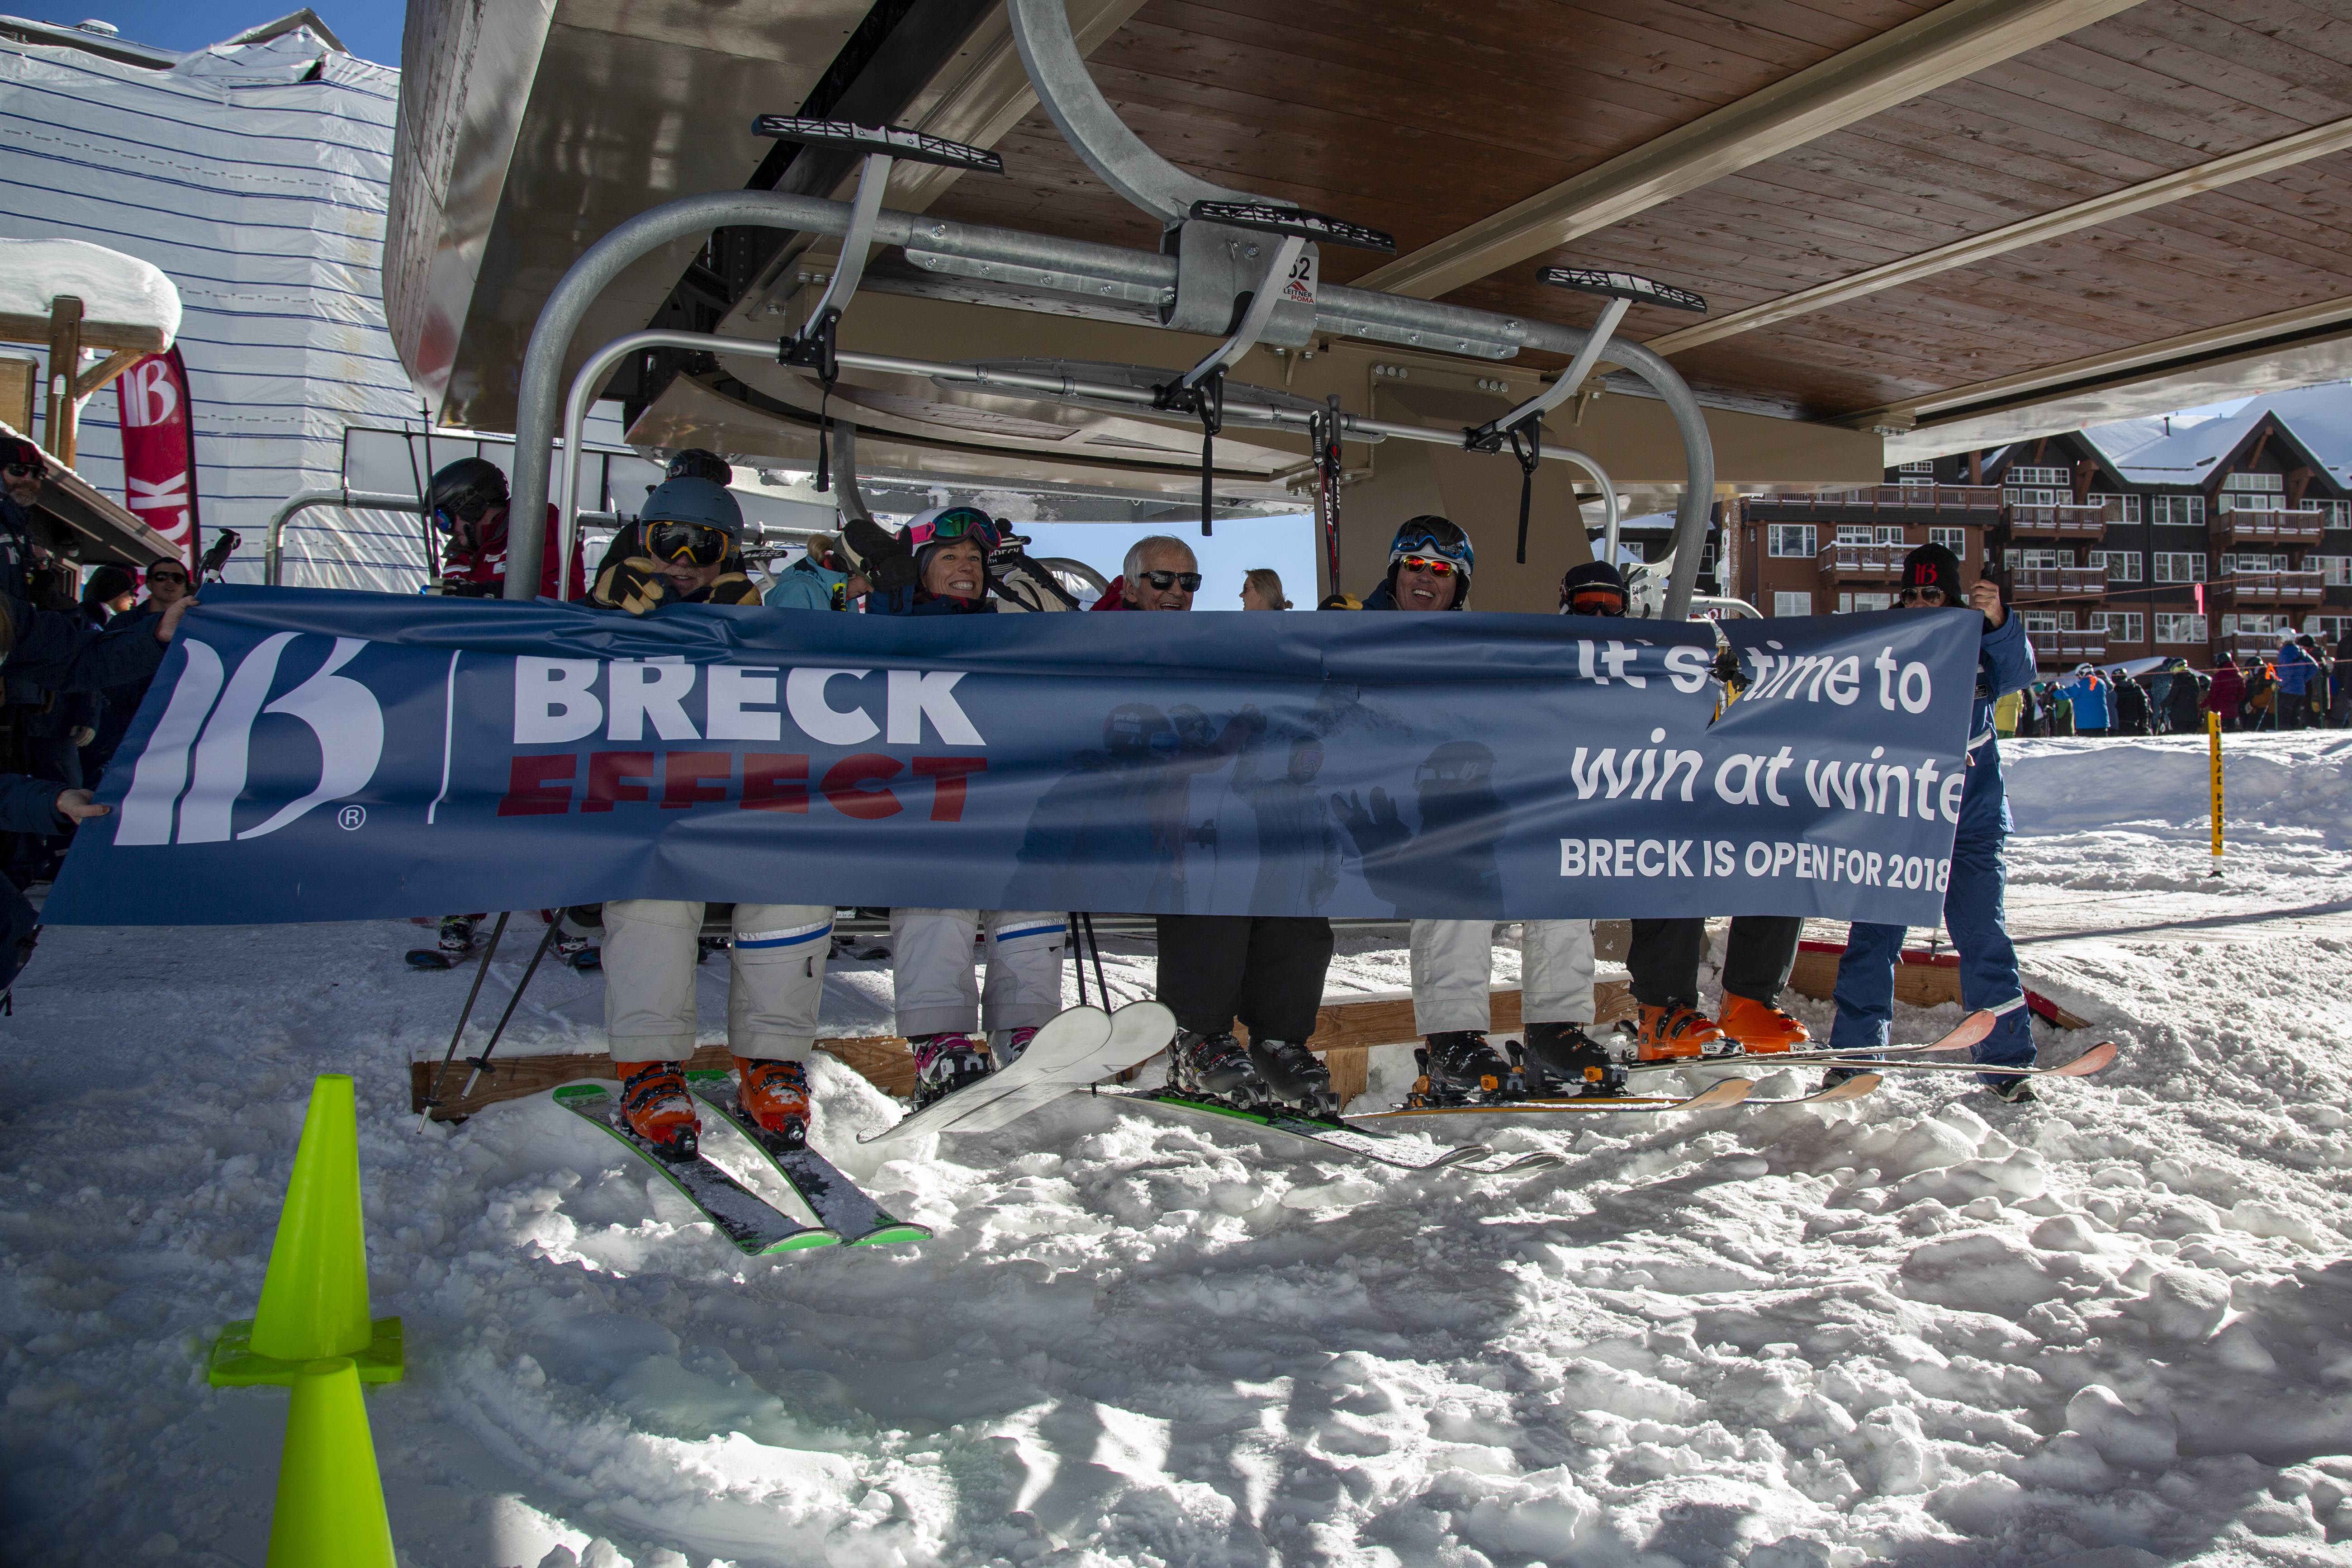 Breck Opening Day 2019 - banner break